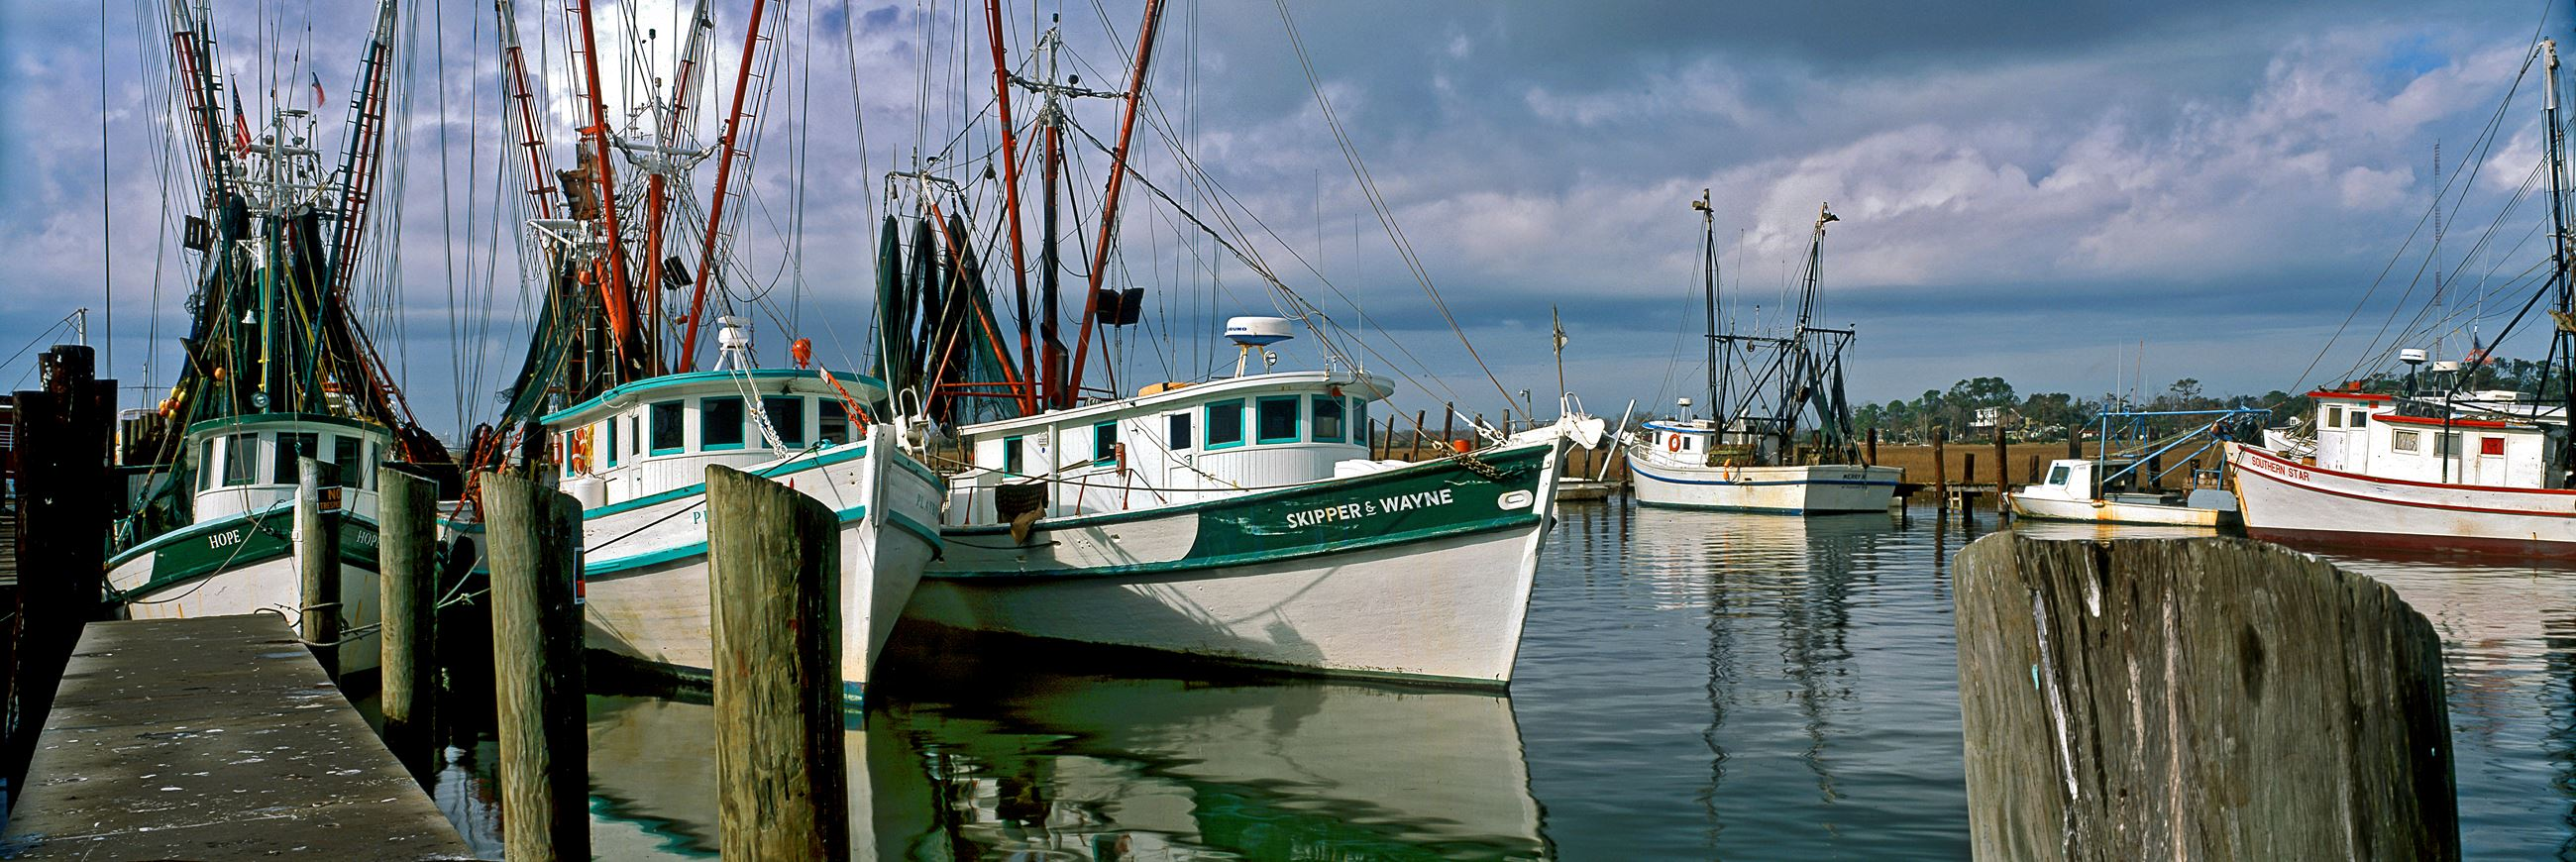 Shem Creek Docks - Copy - Copy